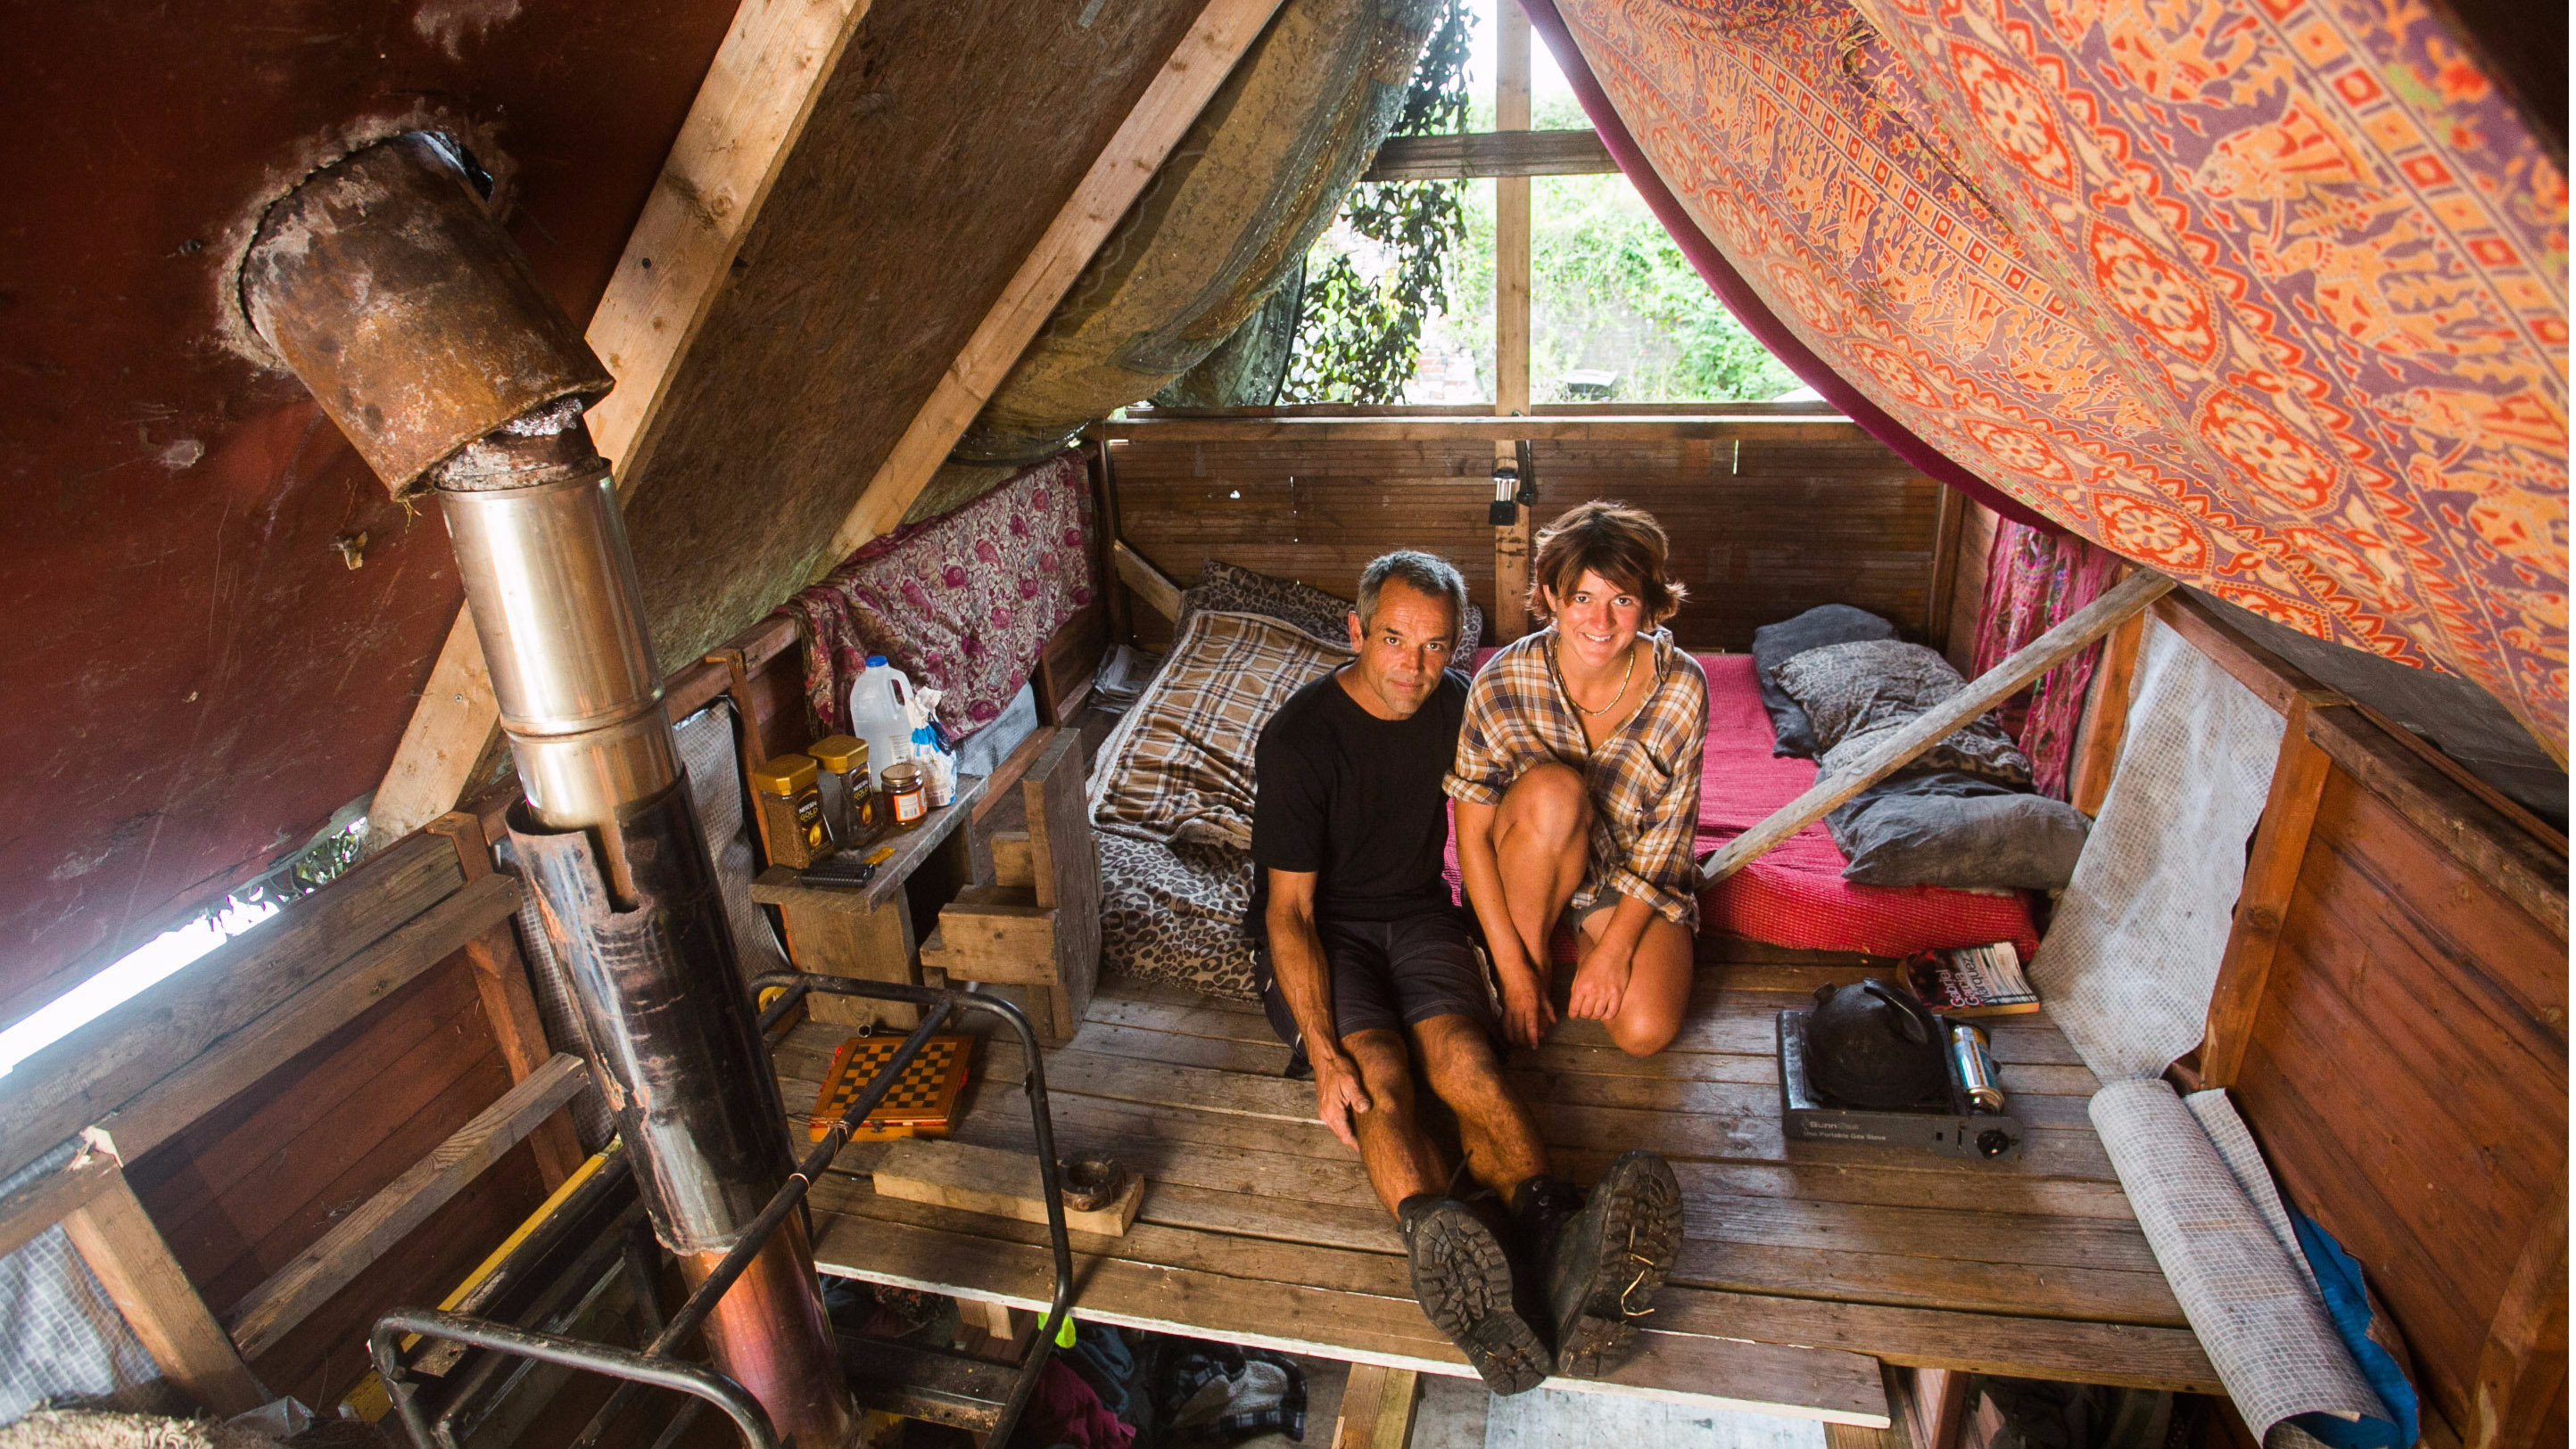 Cornwall Couple Live In Makeshift Hut On Just £1,250 A Year